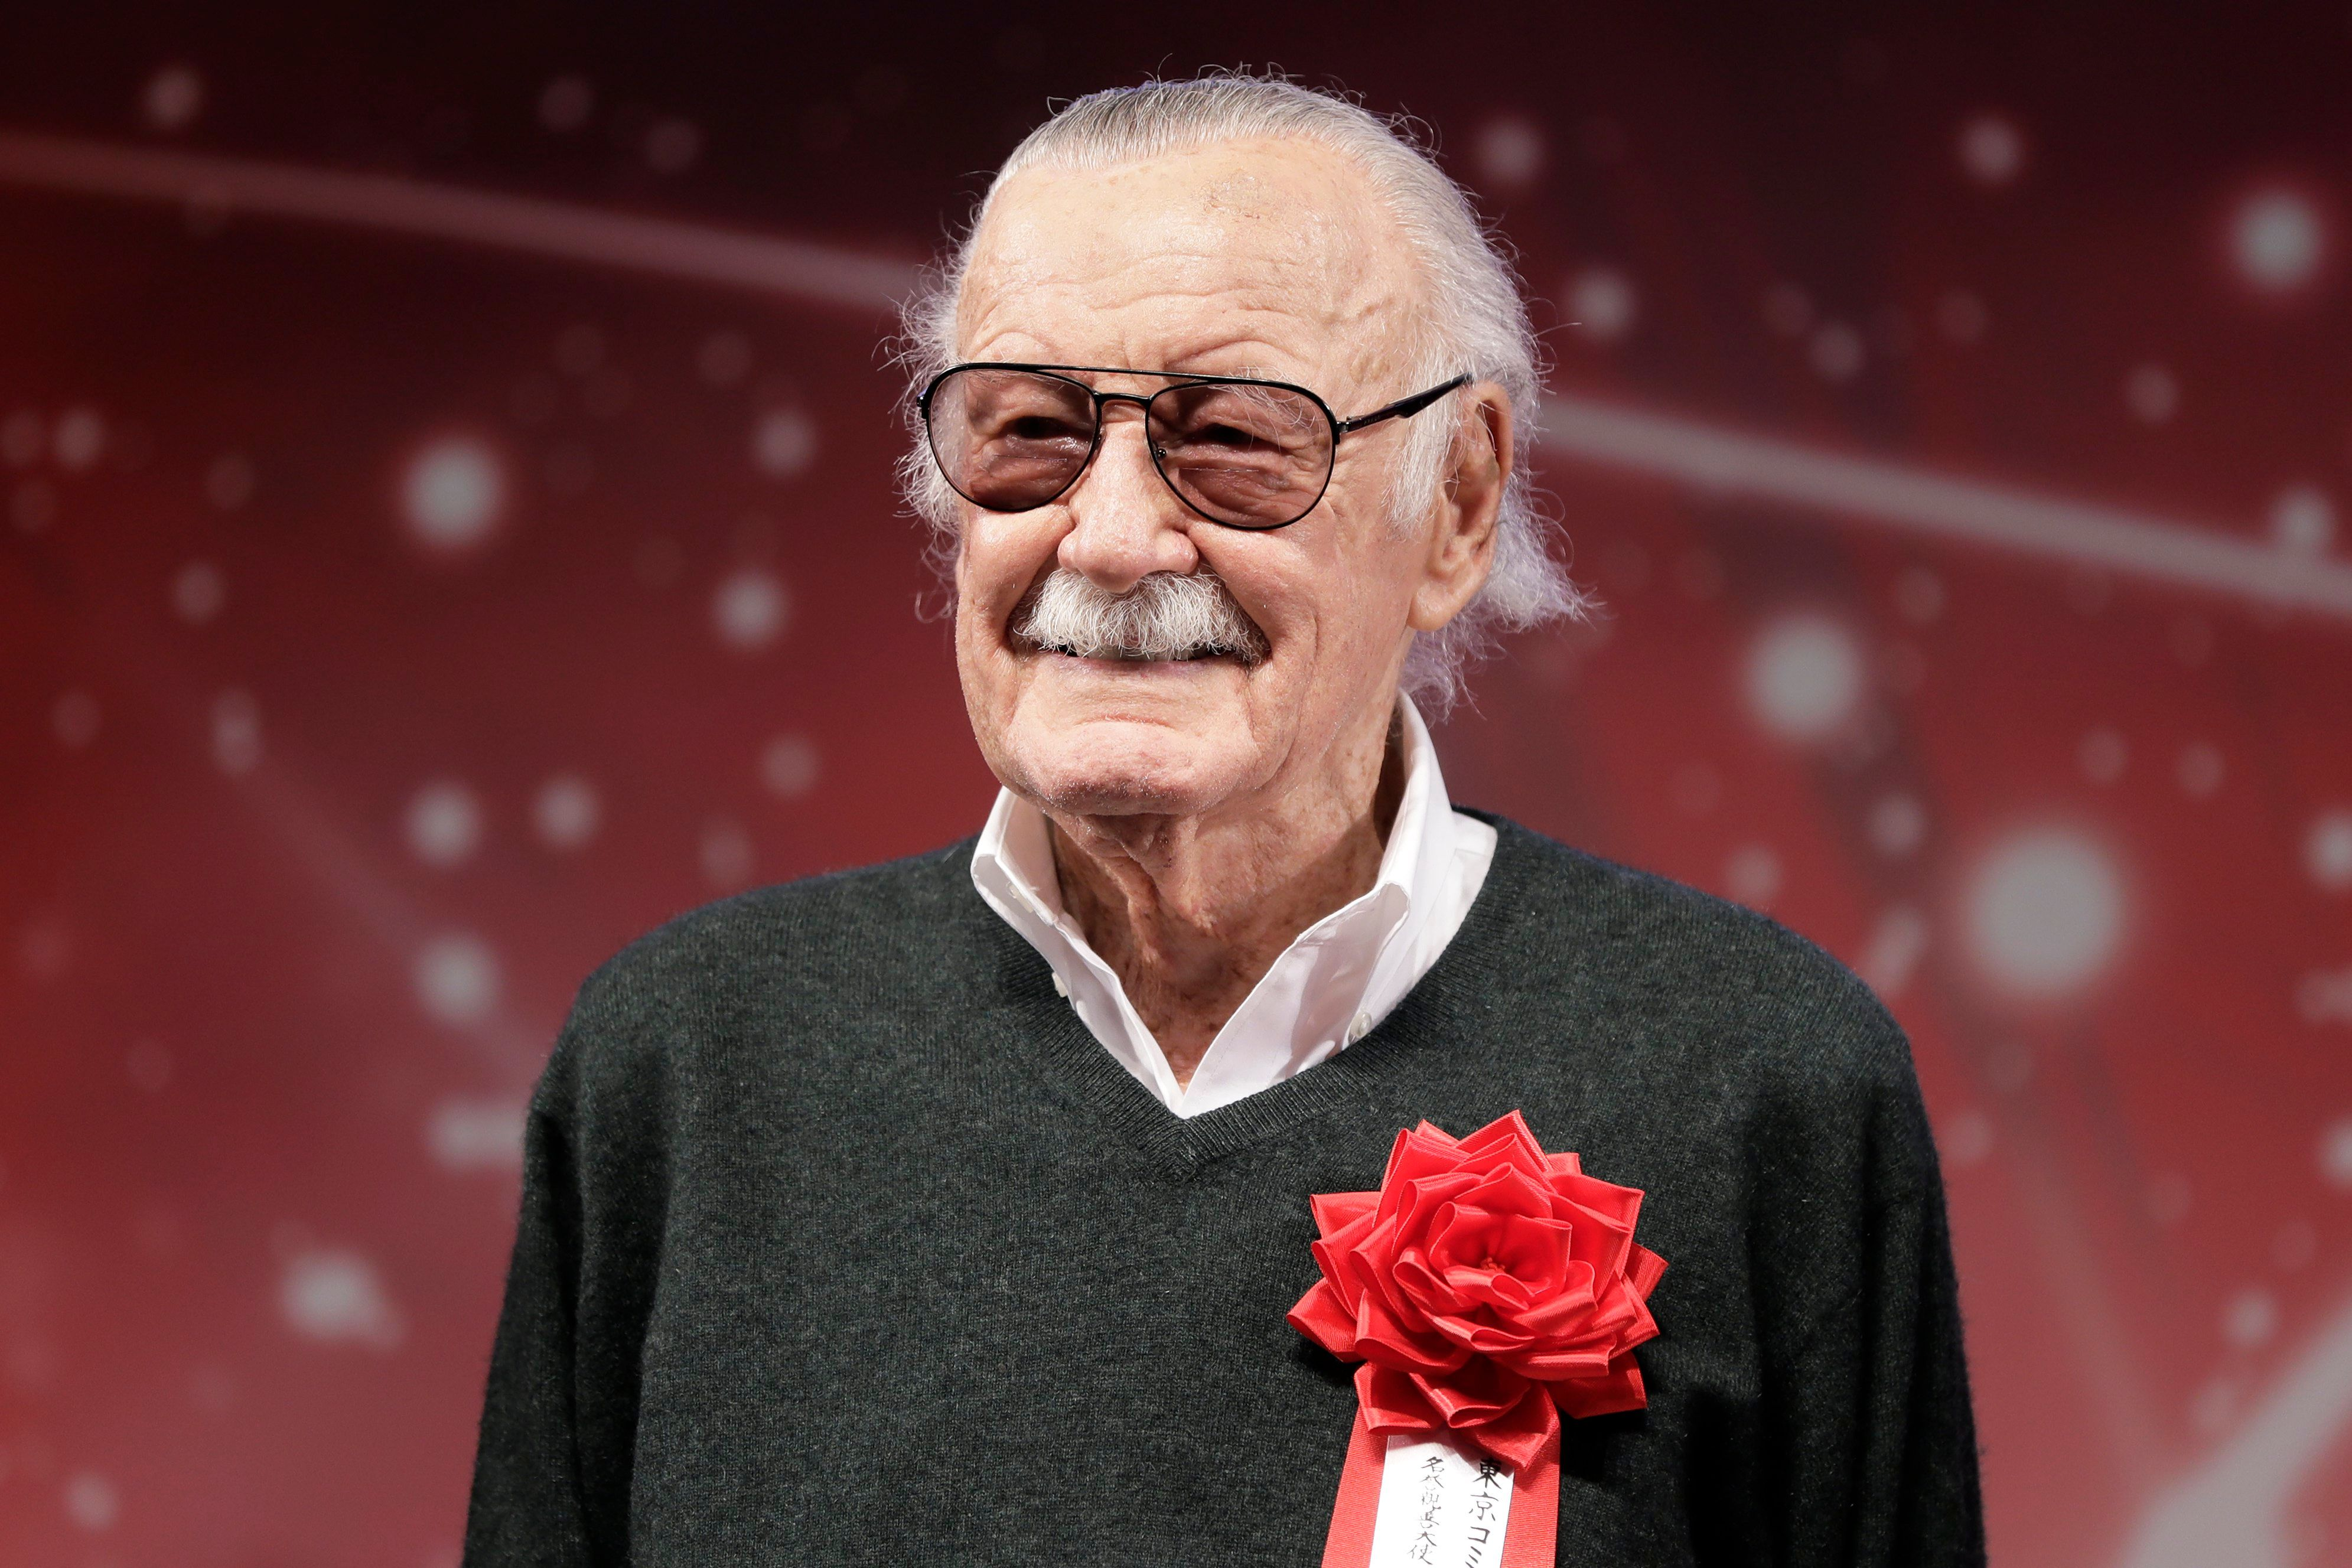 Police investigate elder abuse of Marvel Comics' Stan Lee, focus on controversial manager